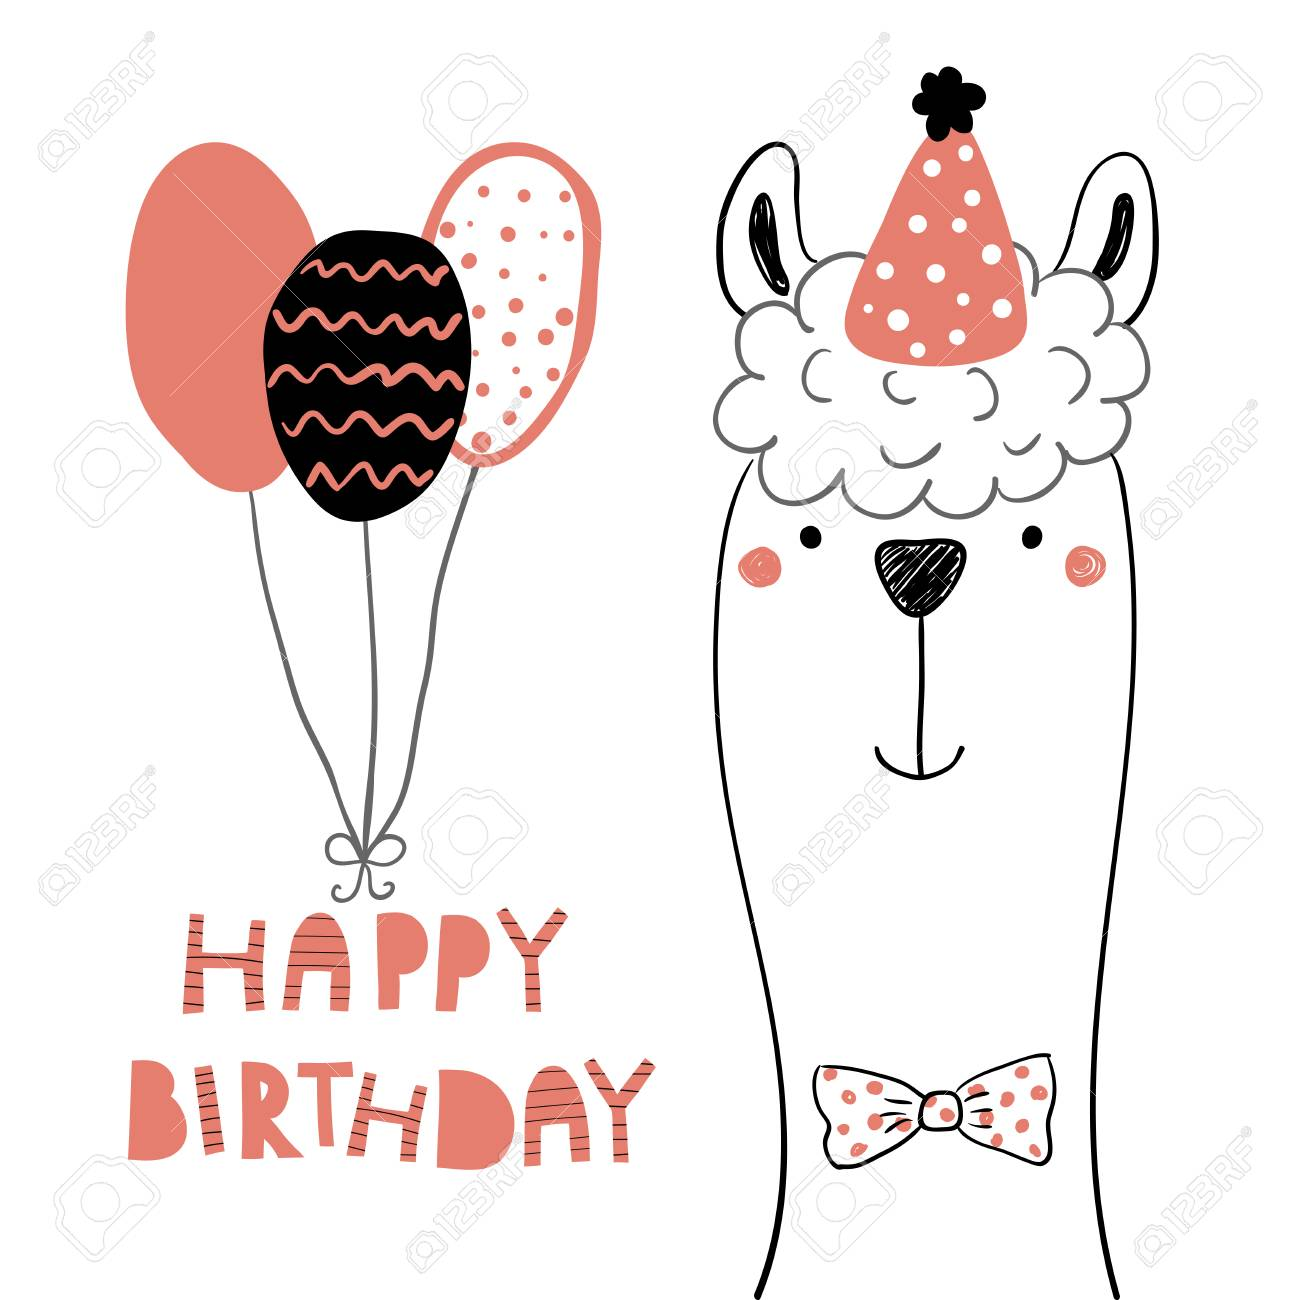 Hand Drawn Birthday Card With Cute Funny Llama In A Party Hat Balloons Lettering